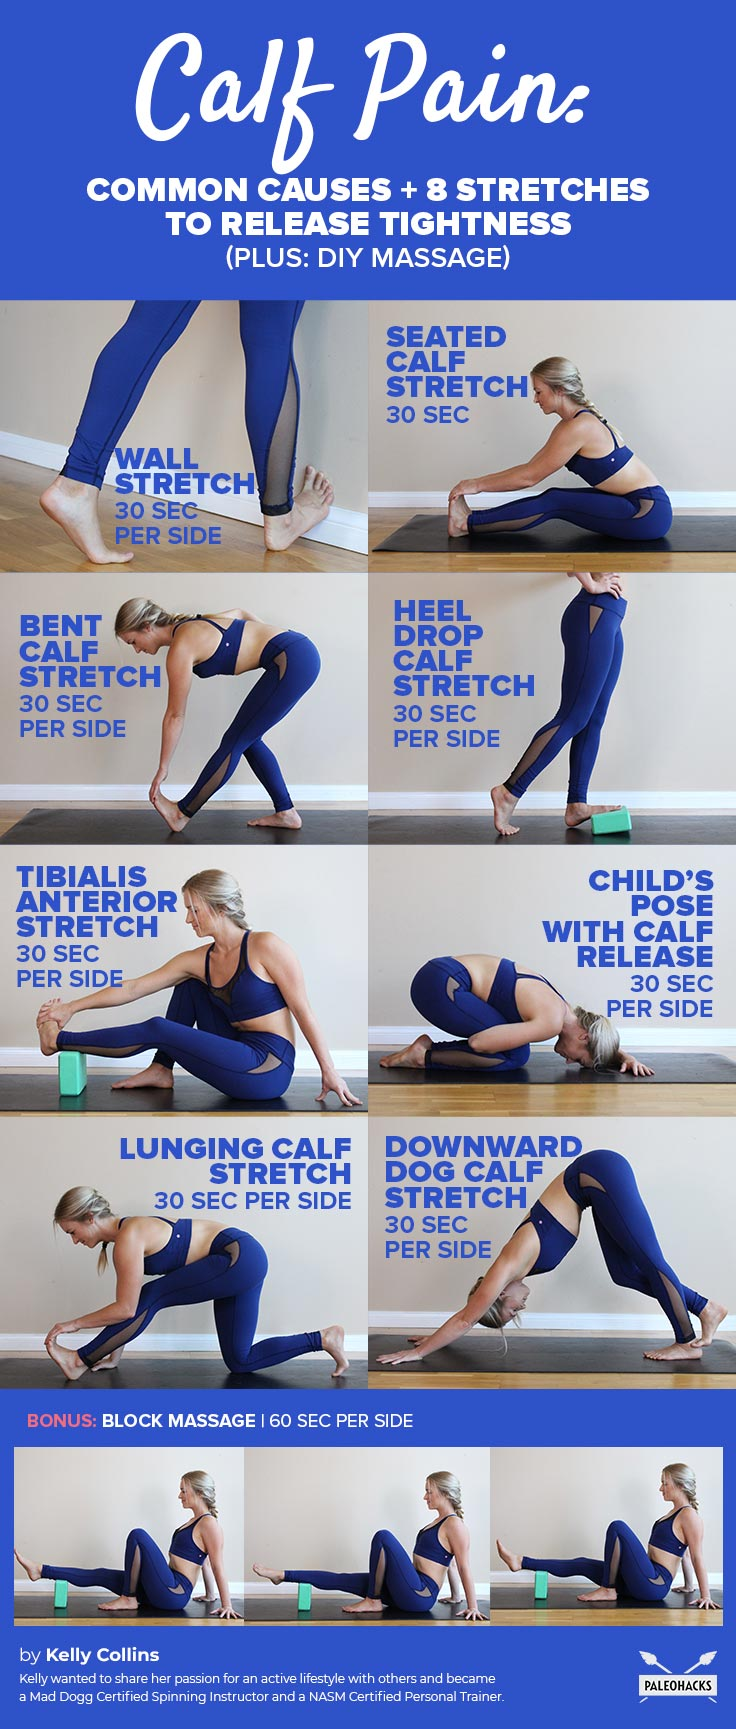 Calf-Pain-Common-Causes-8-Stretches-to-Release-Tightness-infog.jpg